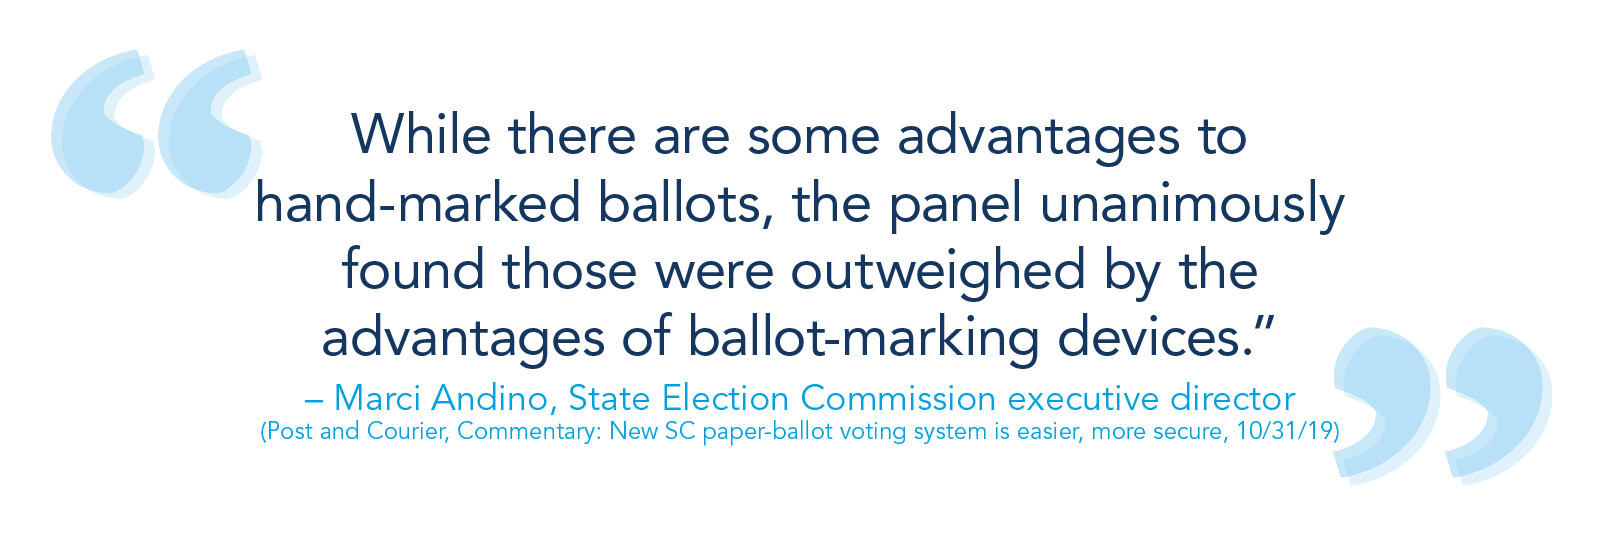 """""""While there are some advantages to hand-marked ballots, the panel unanimously found those were outweighed by the advantages of ballot-marking devices."""" -- Marci Andino, State Election Commission executive director. (Post and Courier, Commentary: New SC paper-ballot voting system is easier, more secure, 10/31/19)"""